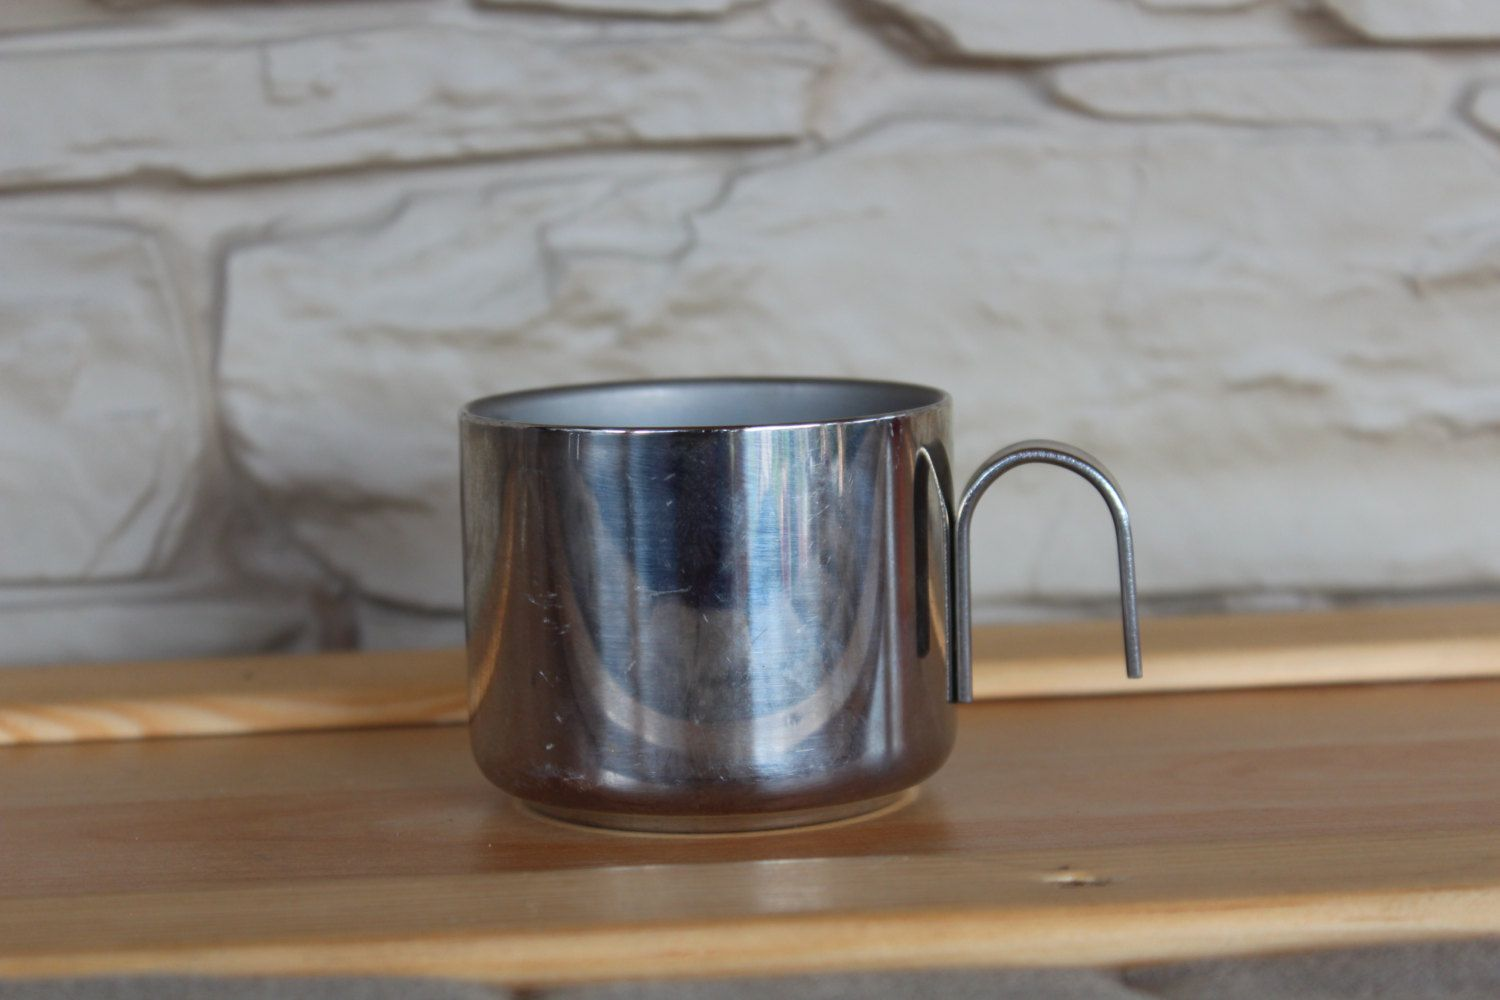 Stainless Steel Espresso Cup Made In Italy Inox Coffee Cup Metal Cup Tea Metal Cups Espresso Cups Coffee Cups